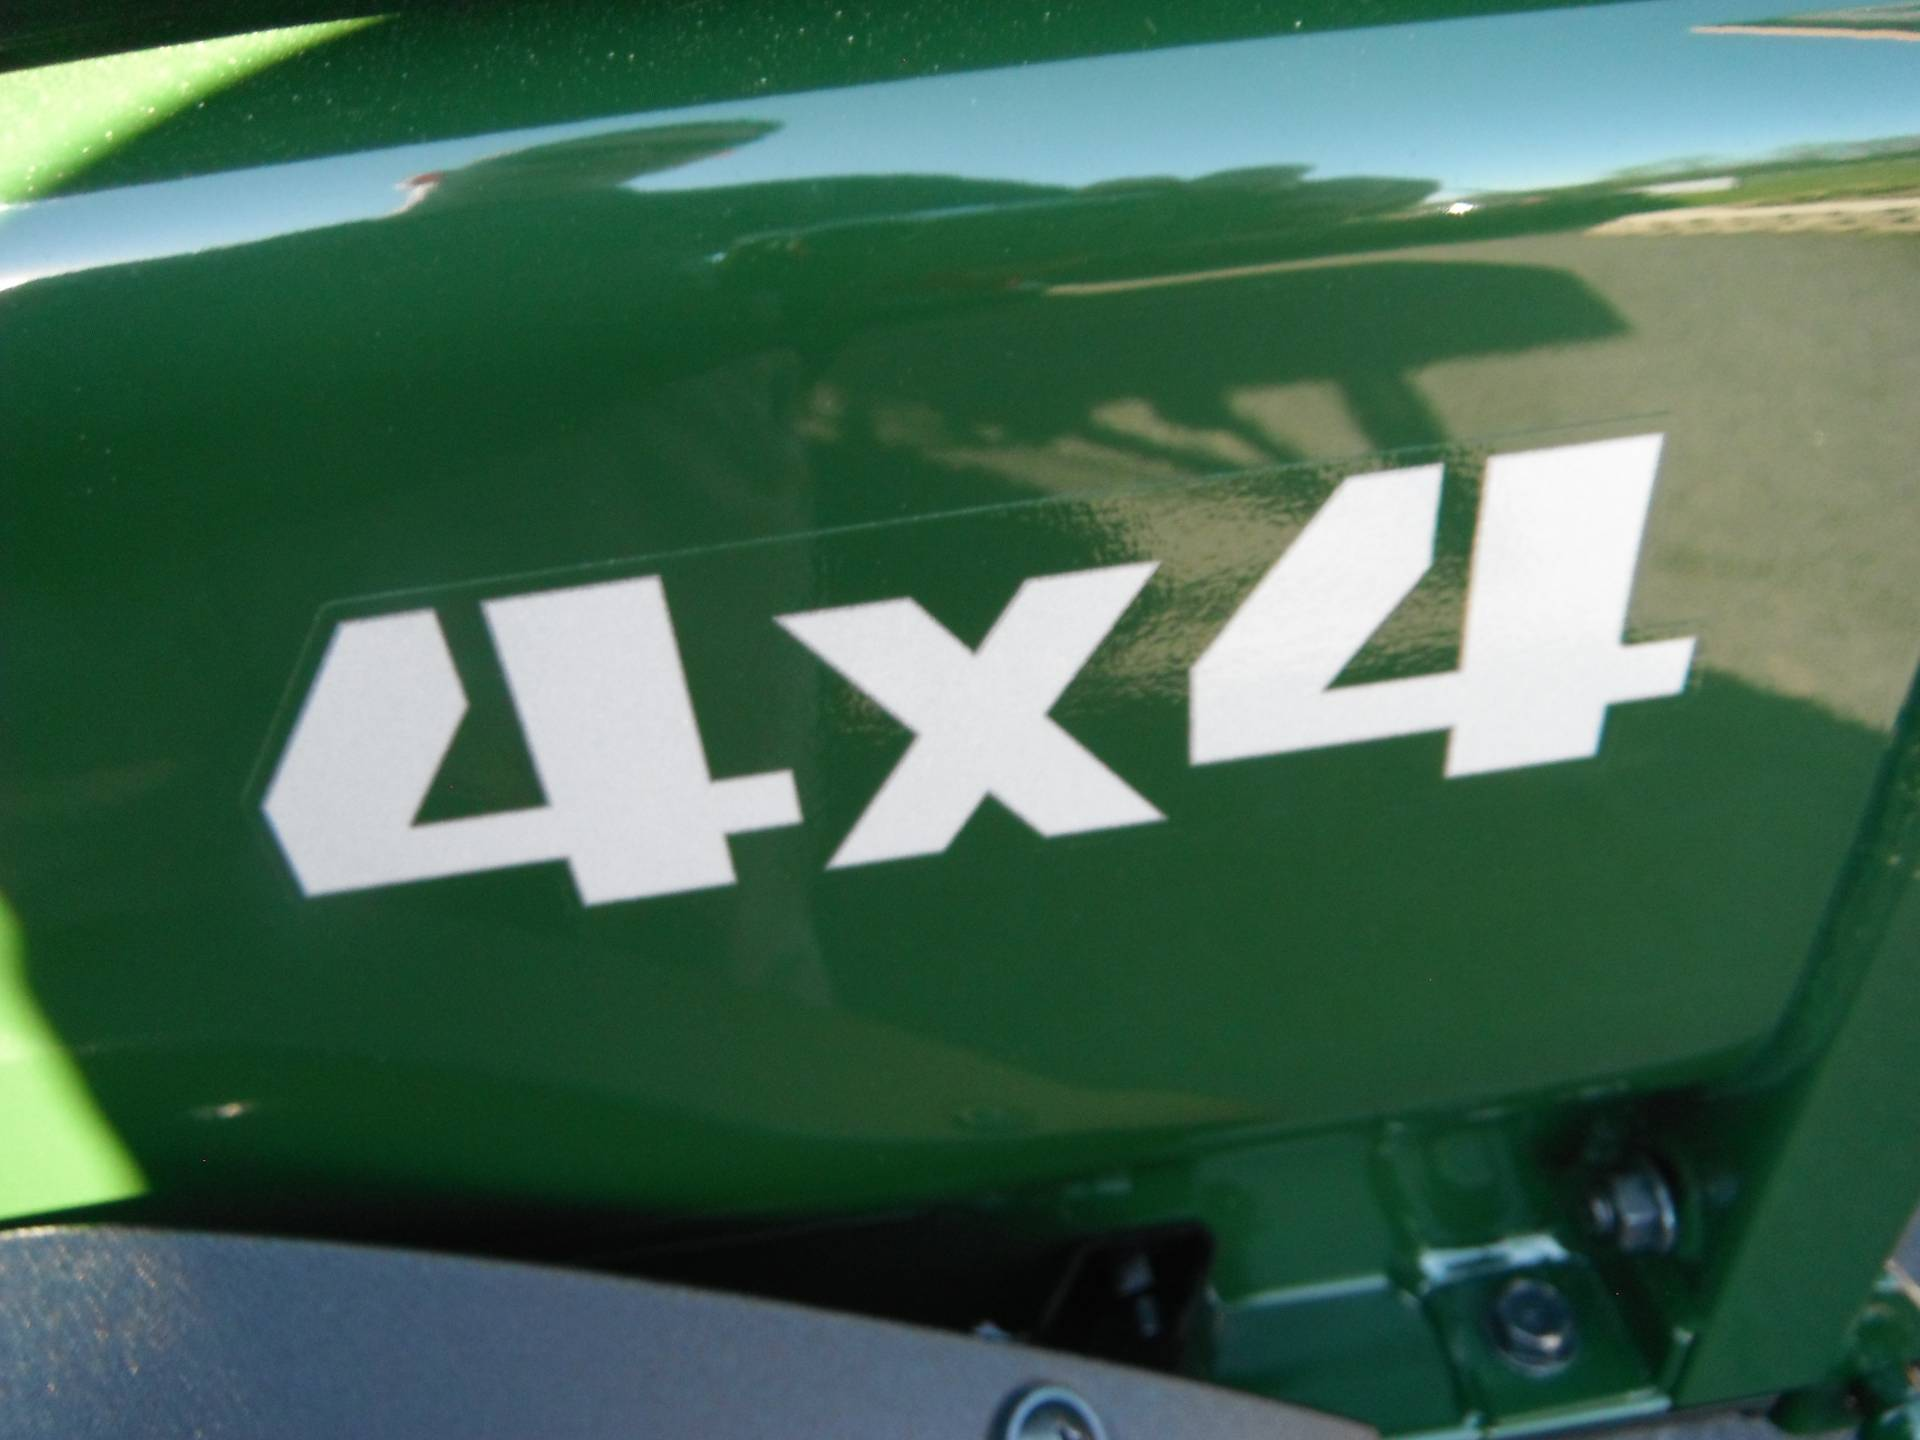 2020 Kawasaki Mule 4010 4x4 in Unionville, Virginia - Photo 4